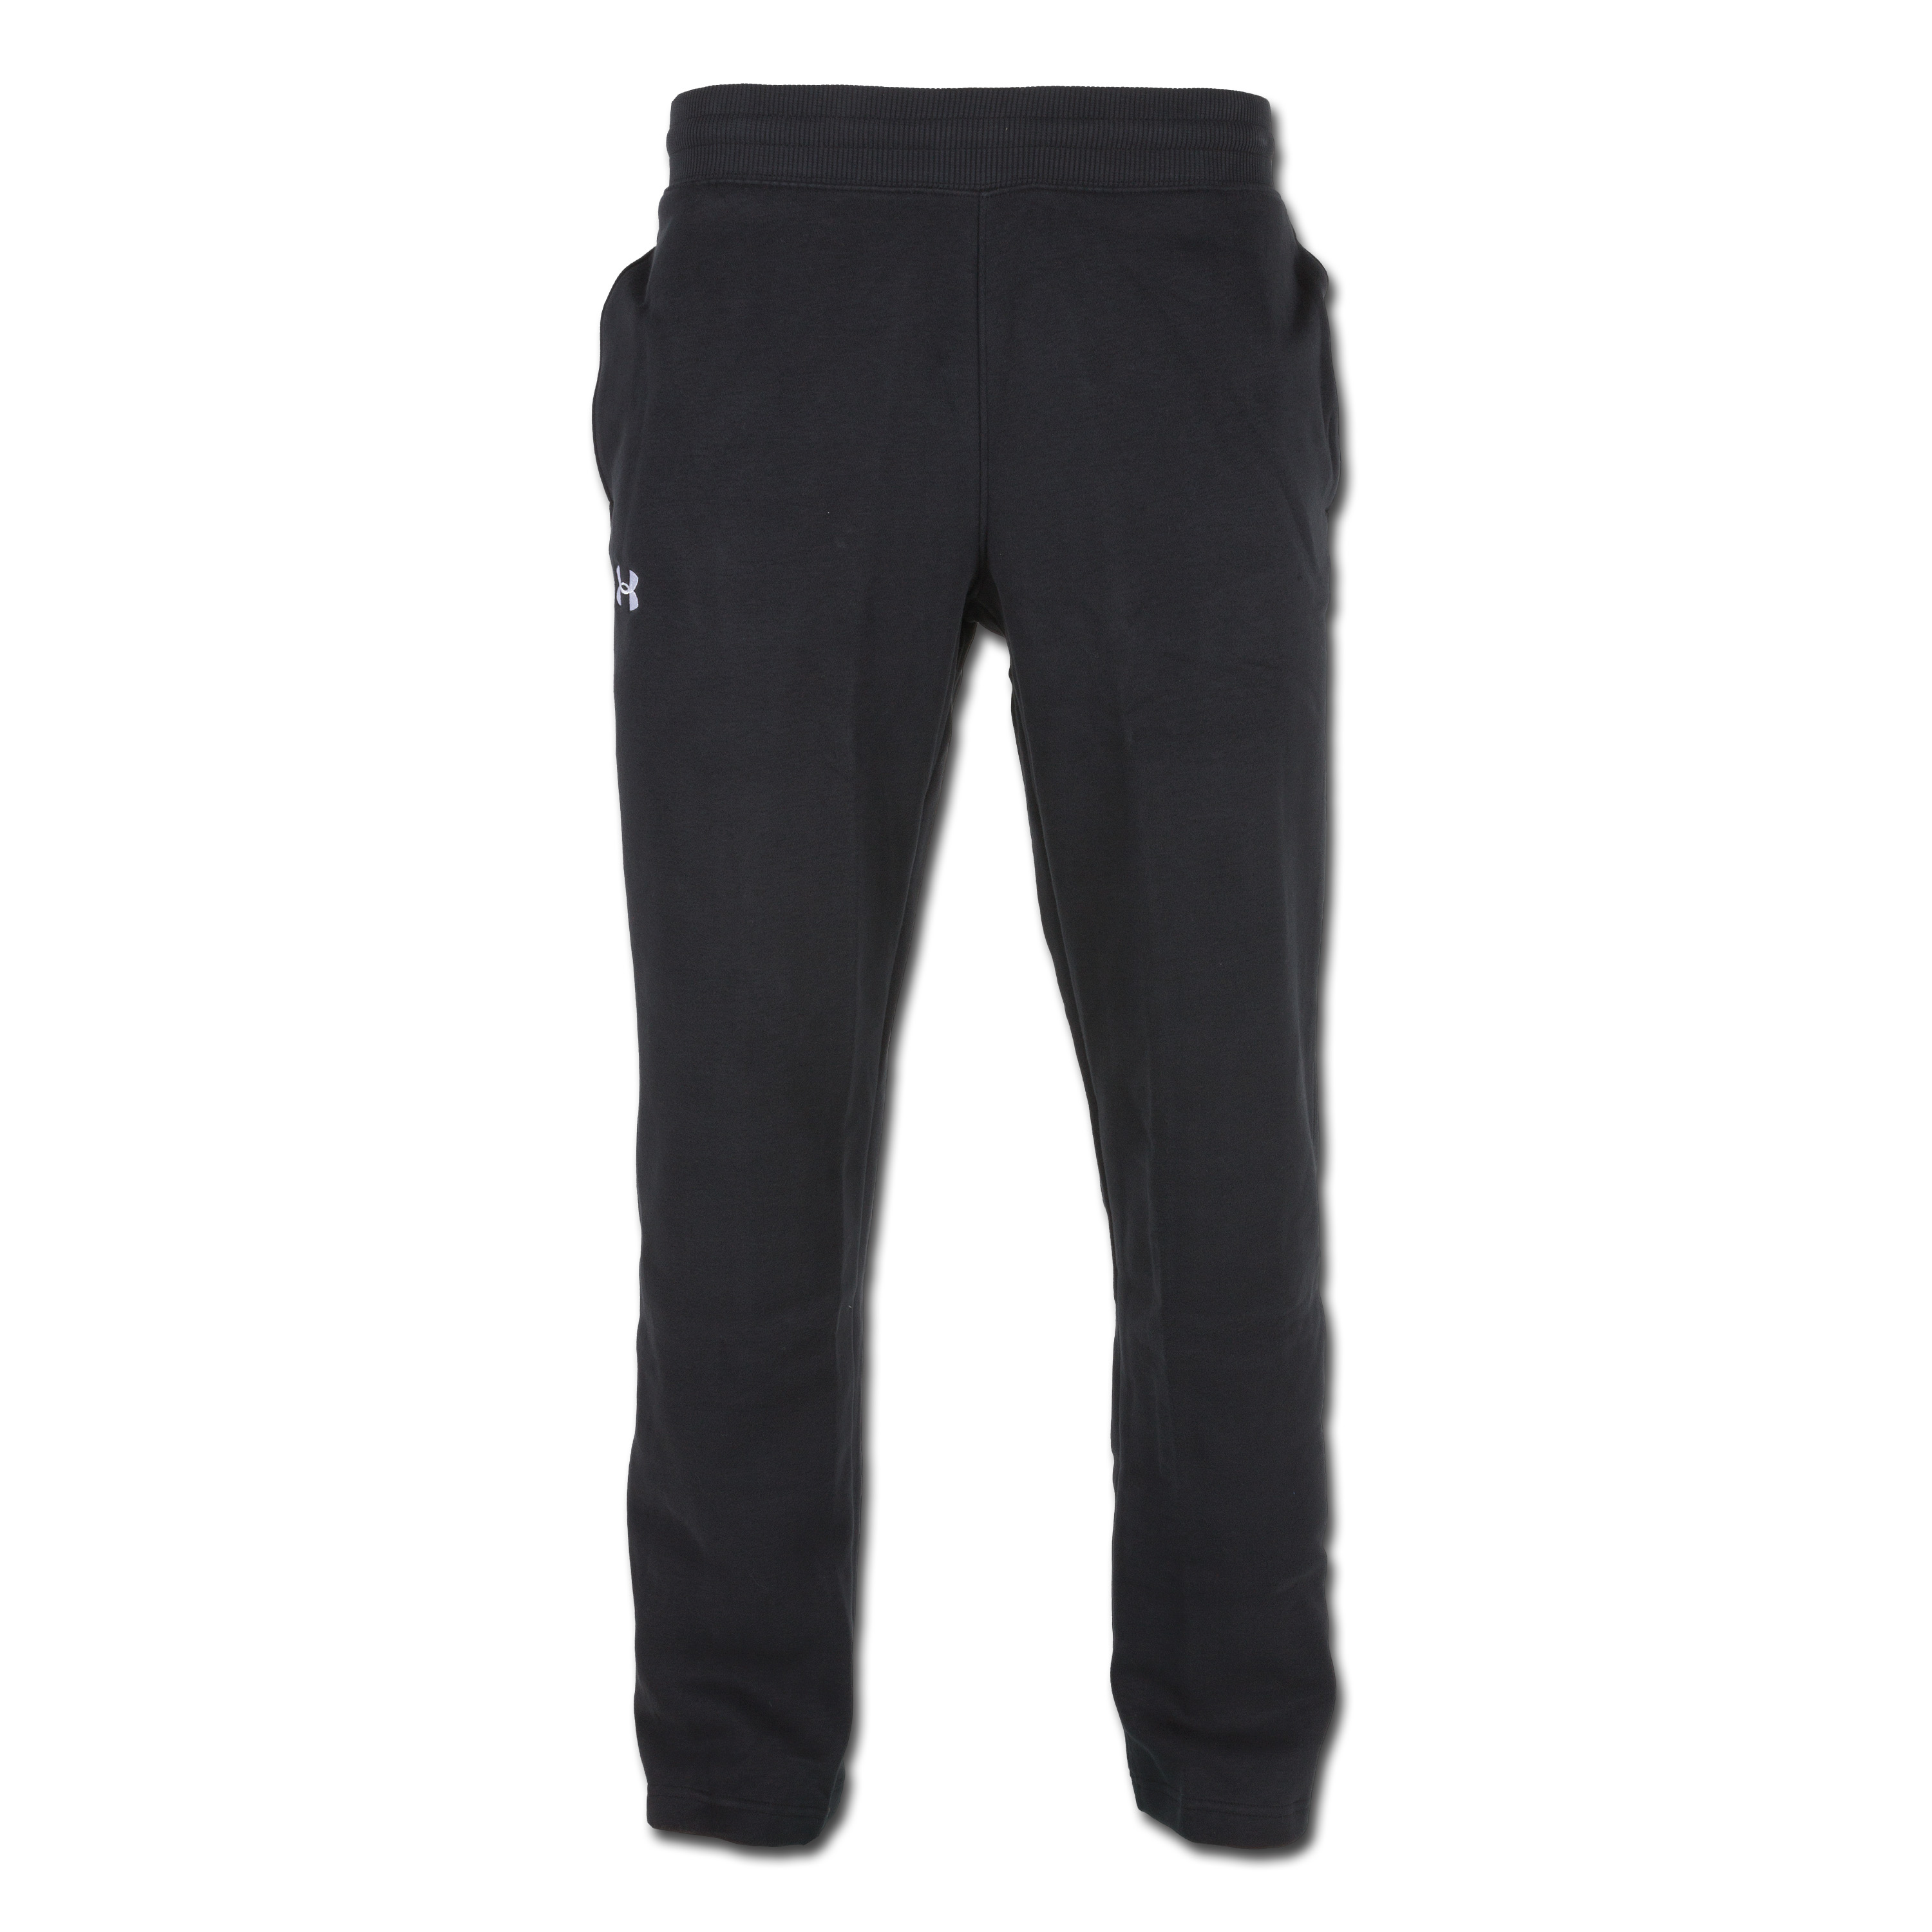 Under Armour Storm Charged Cotton Rival Pant schwarz